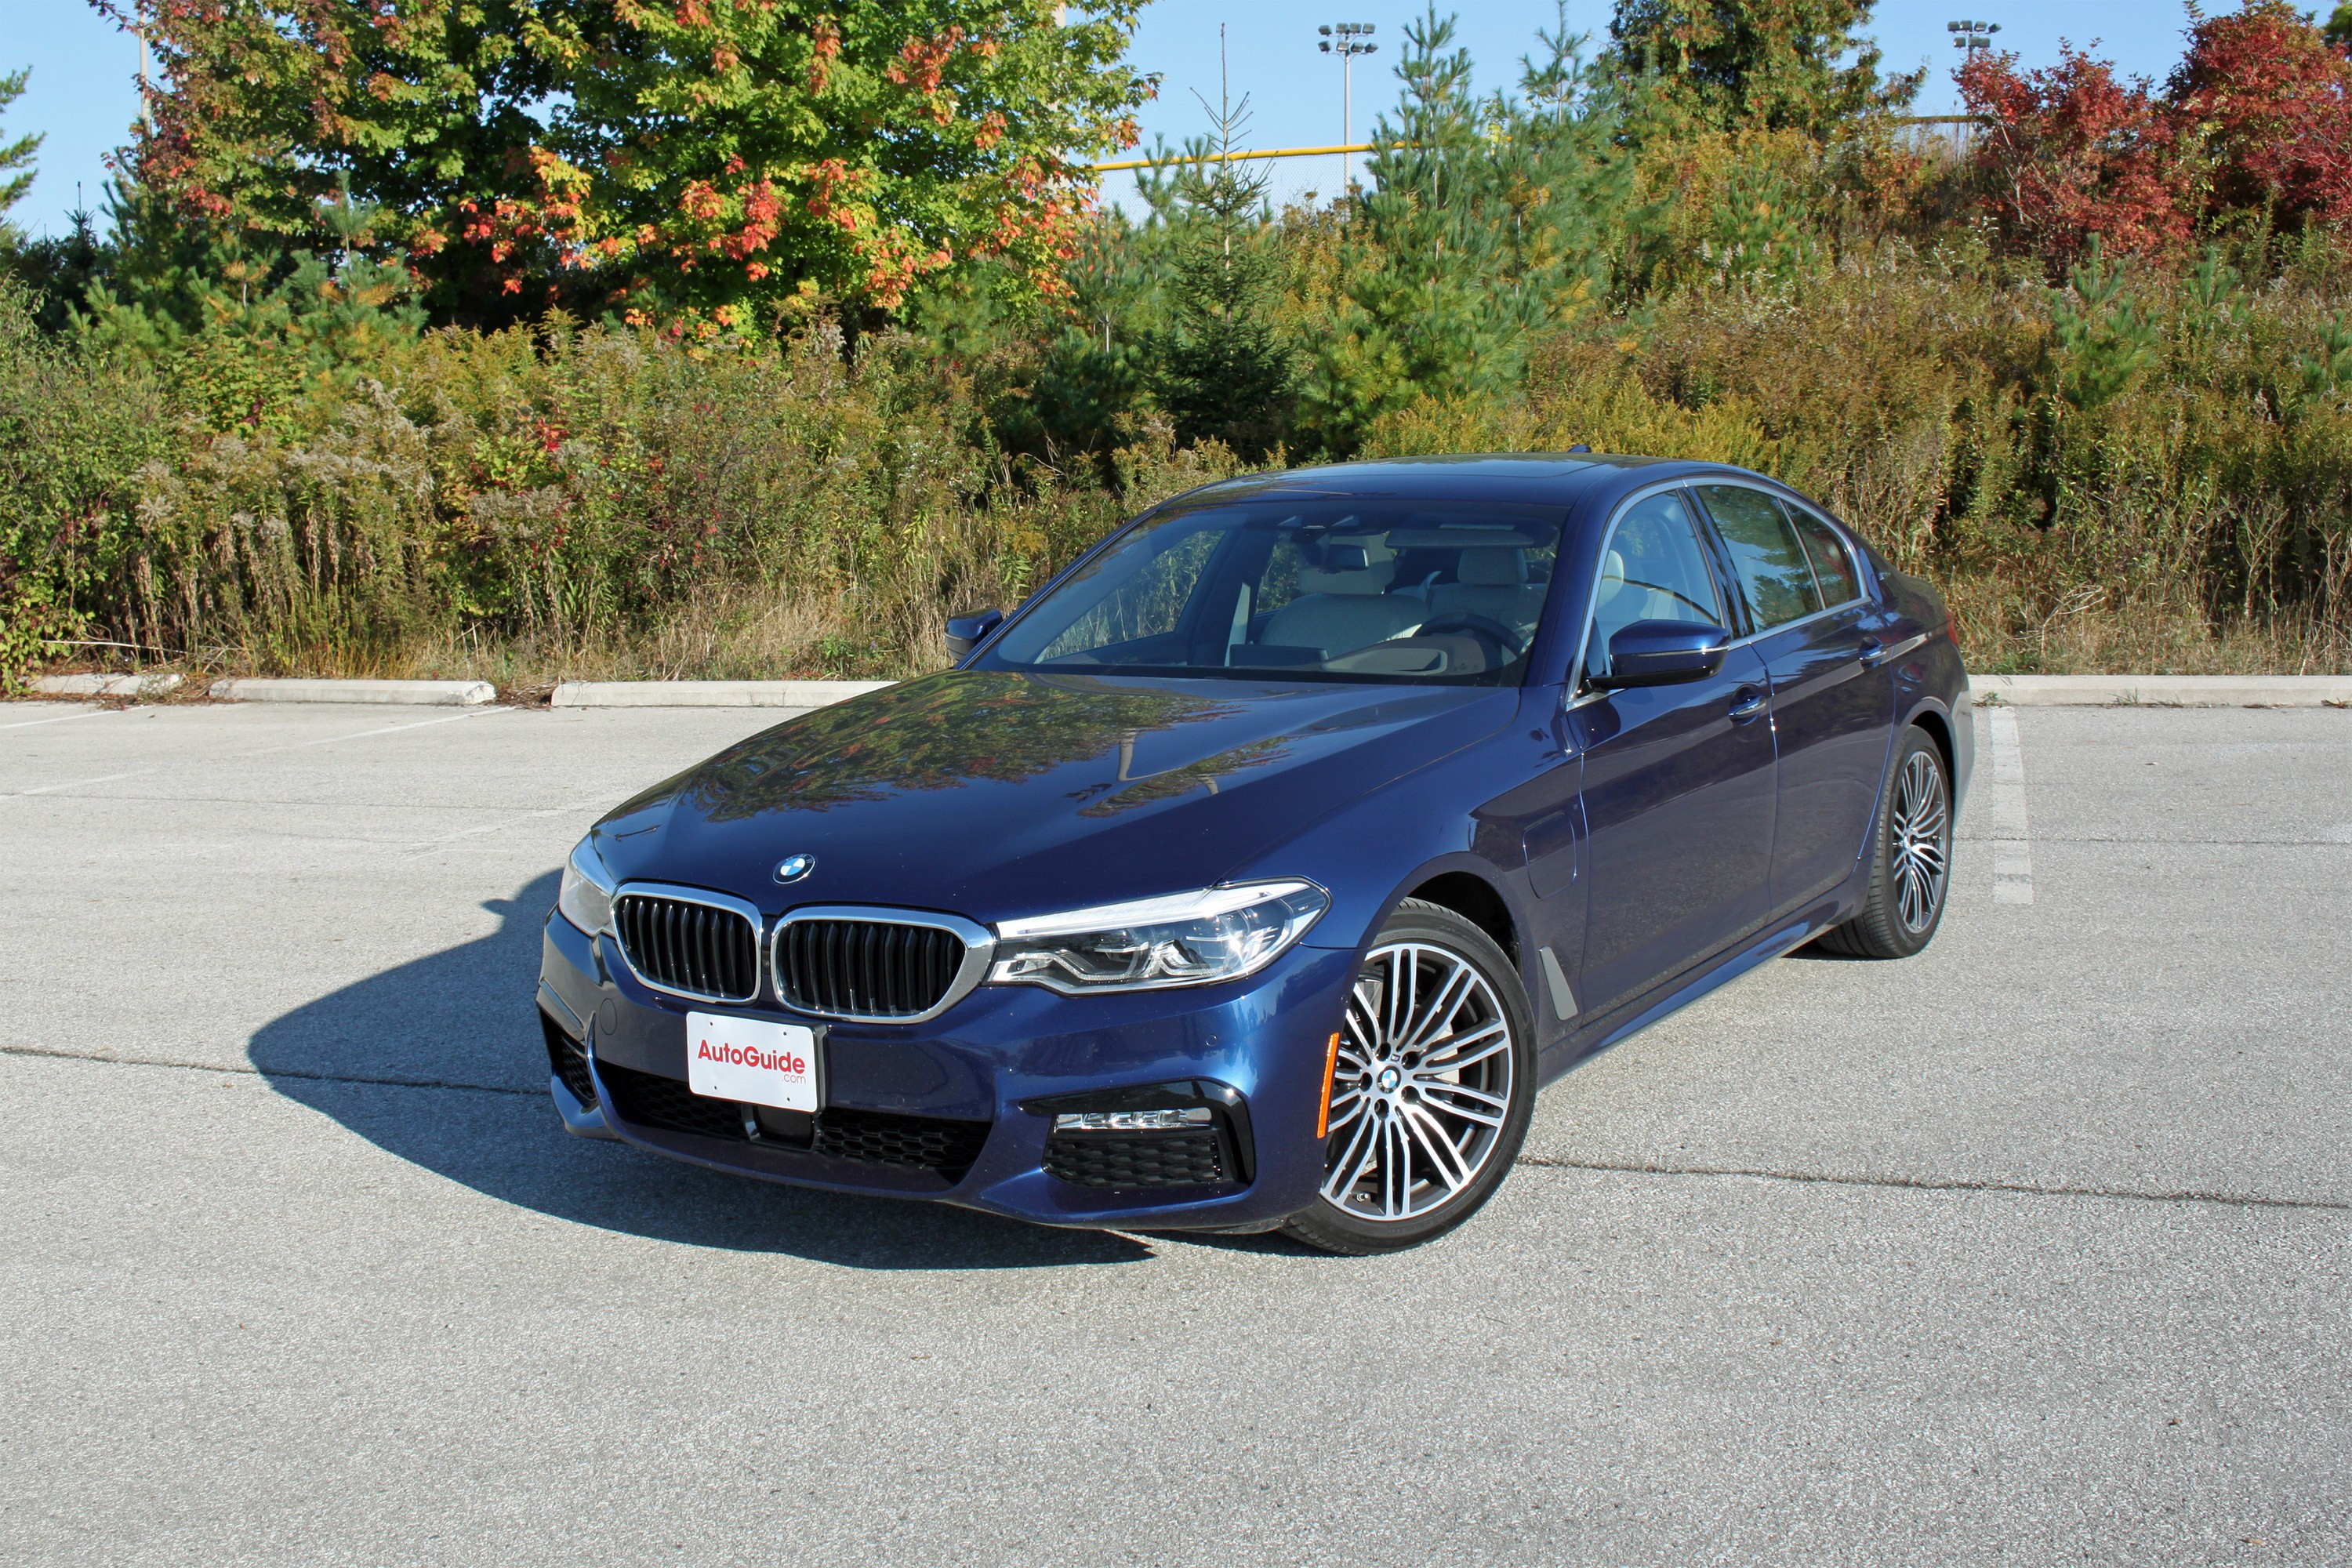 5 Reasons The 2018 Bmw 530e Plug In Hybrid Is Better Than The Gas Only Model 187 Autoguide Com News